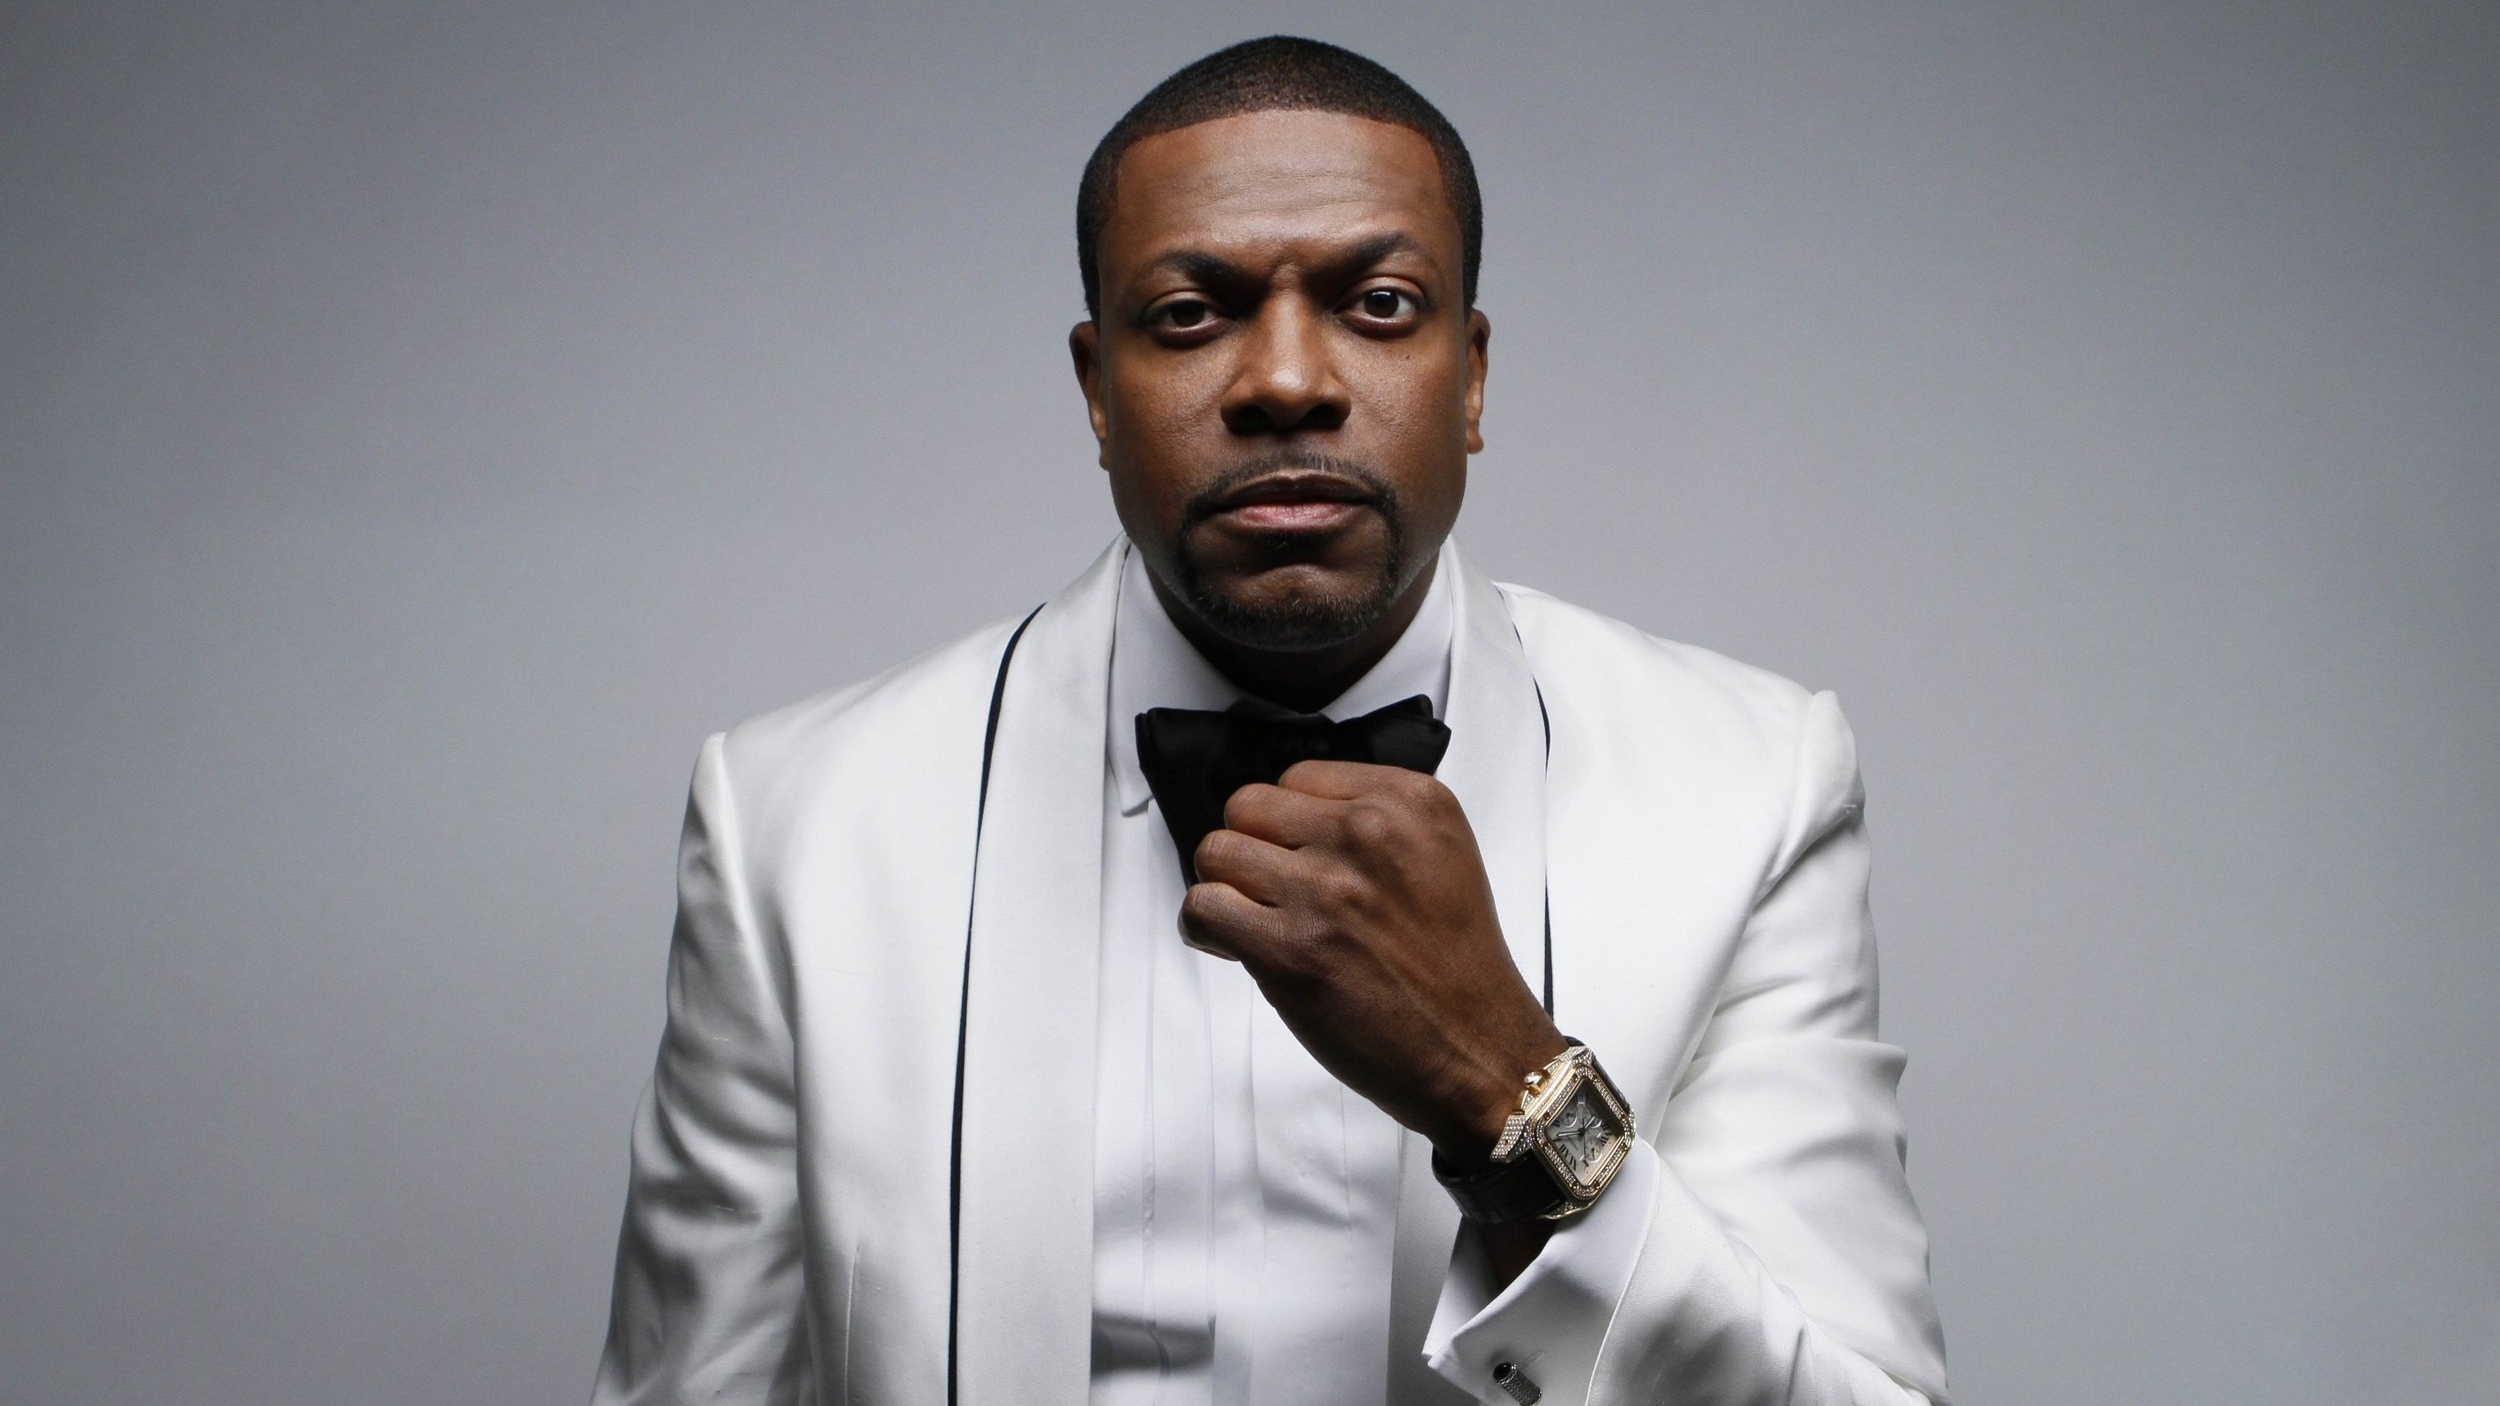 Chris Tucker headshot 2015 2.jpg